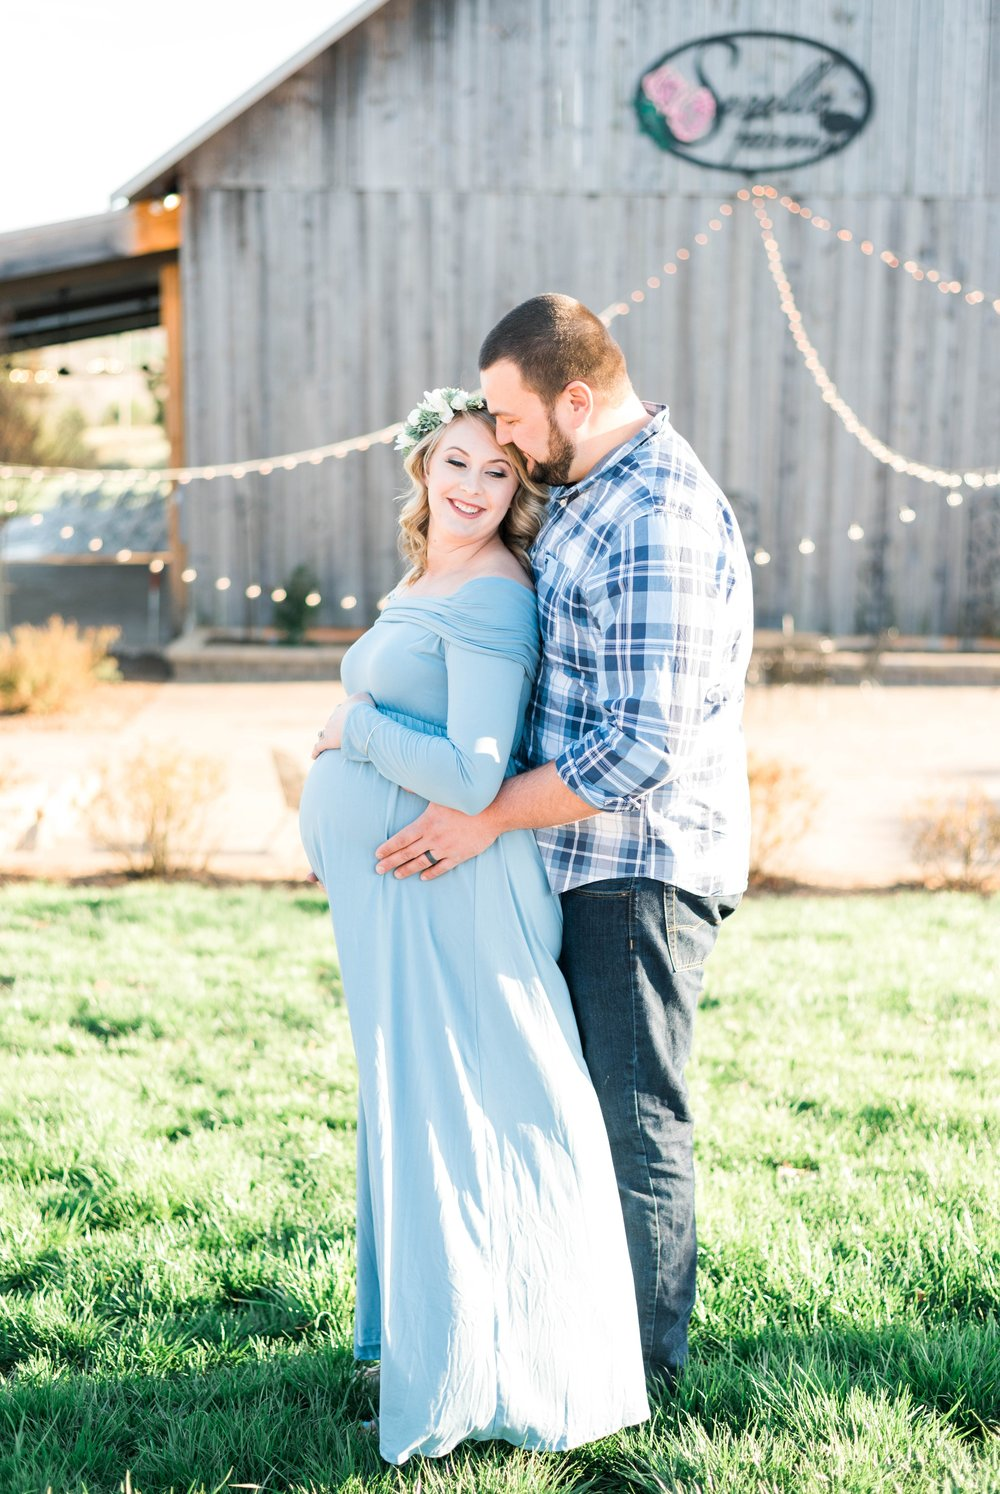 SorellaFarms_Jessica+Dylan_MaternitySession_Virginiaweddingphotographer 17.jpg